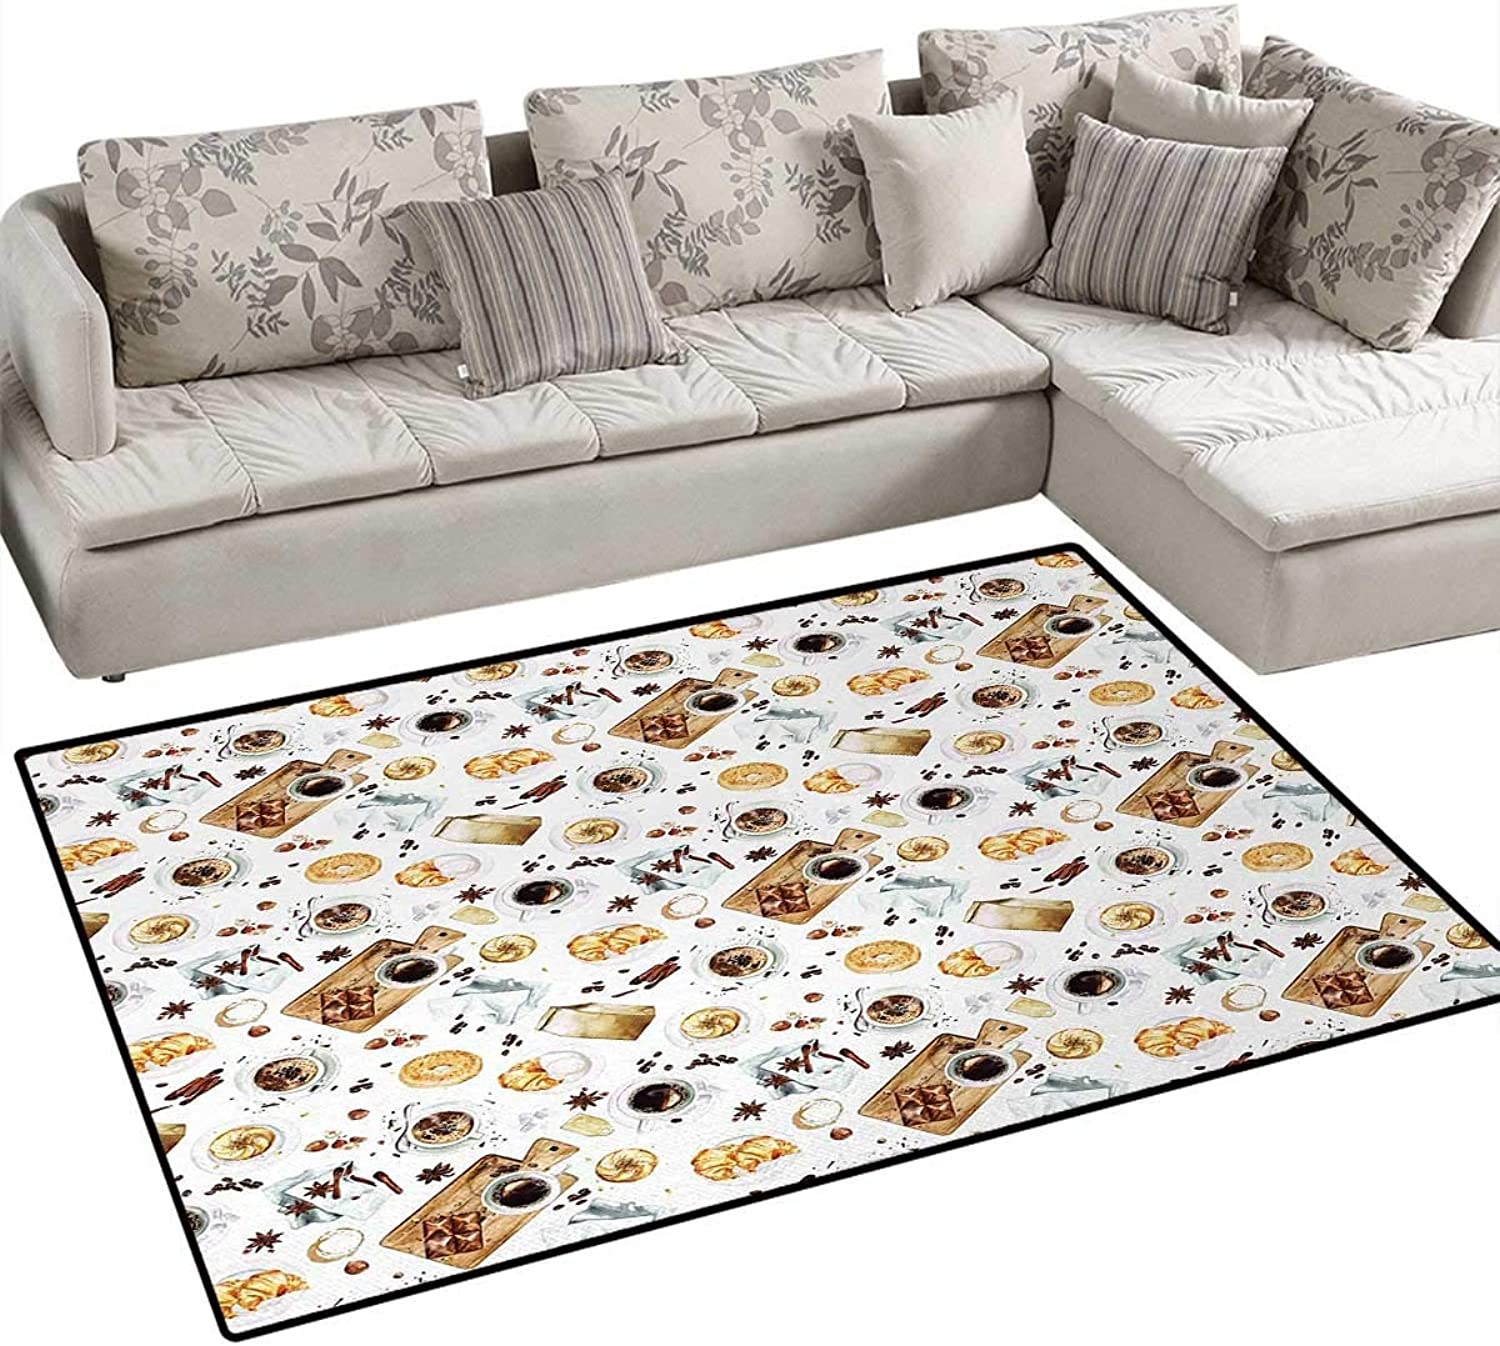 Modern,Rug,Lunch Table with Croissant Bagels Coffee Cheese Chocolate Watercolor Artwork,Floor Mat for Kids,Sand Brown White,40 x55